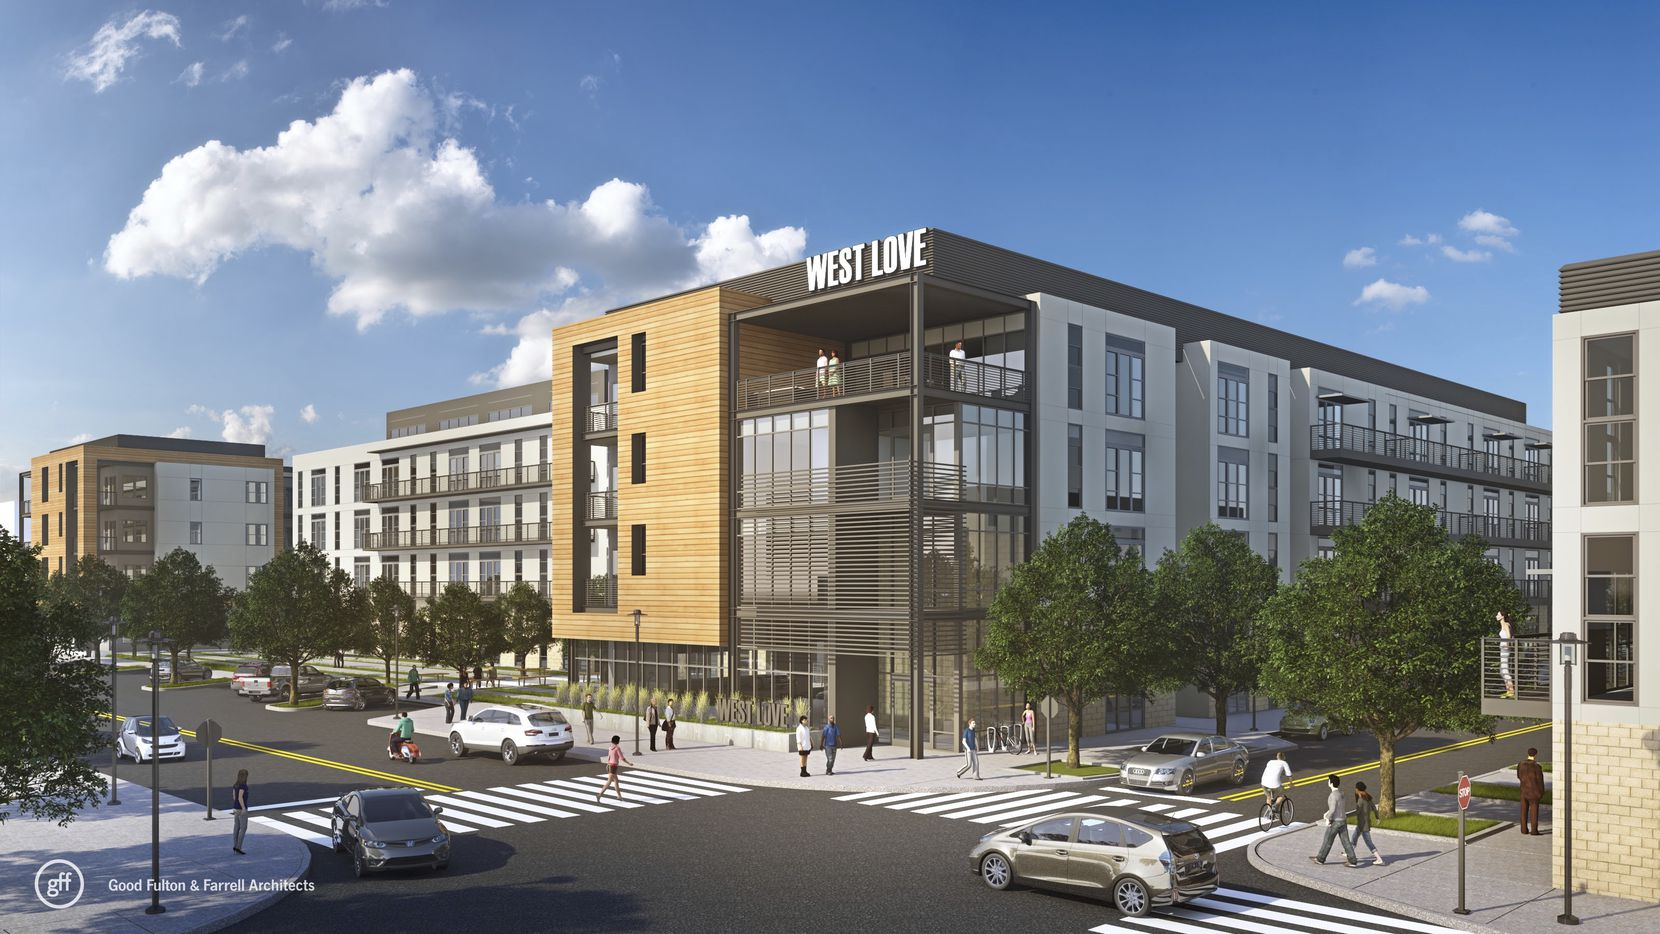 Apartment builder JPI plans to develop hundreds of rental units in the 37-acre West Love mixed-use project near Dallas Love Field.